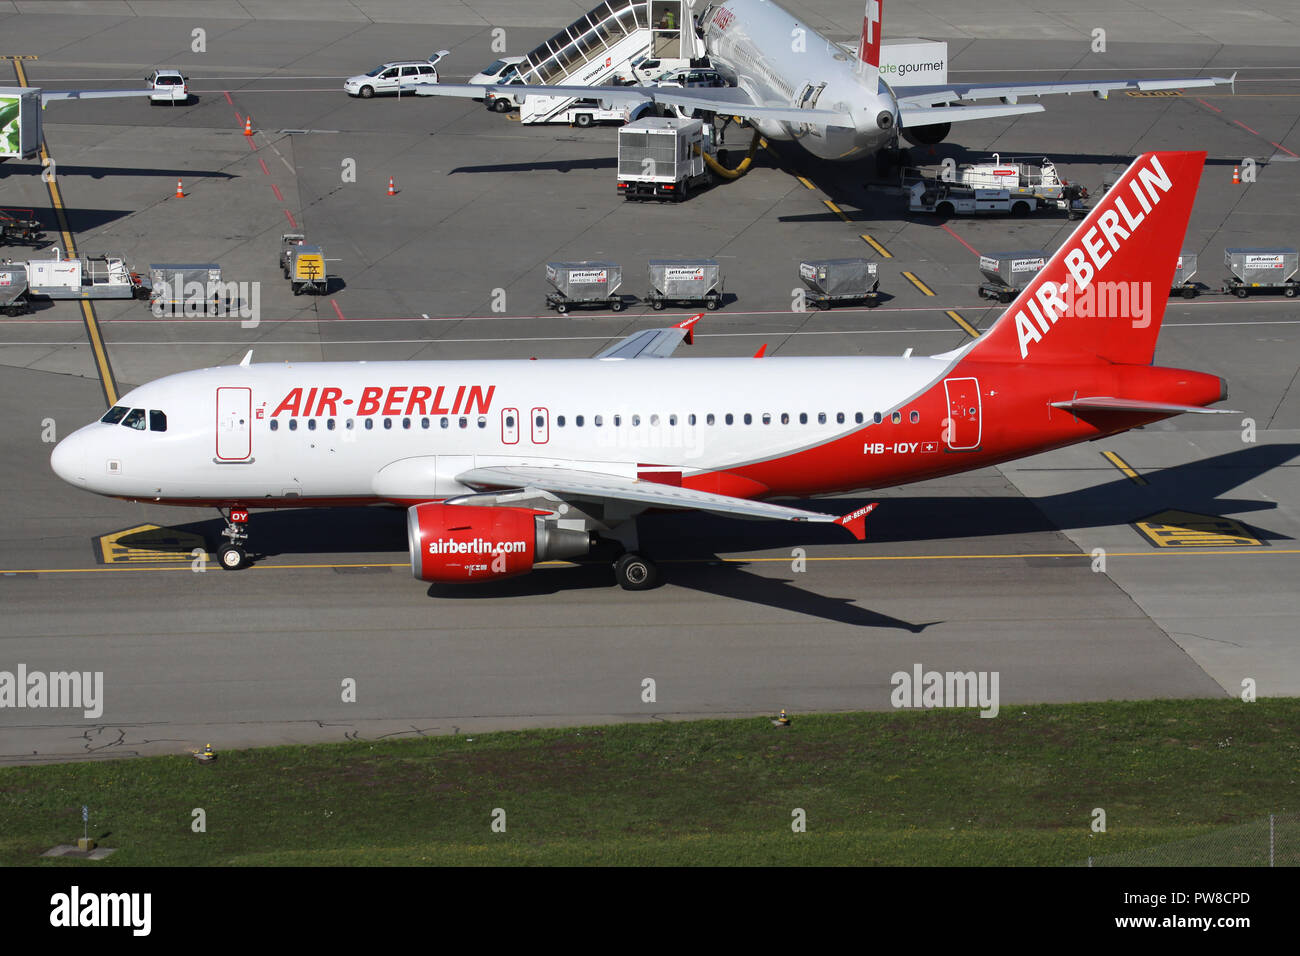 Swiss Belair Airbus A319-100 in old Air Berlin livery with registration HB-IOY on taxiway of Zurich Airport. - Stock Image